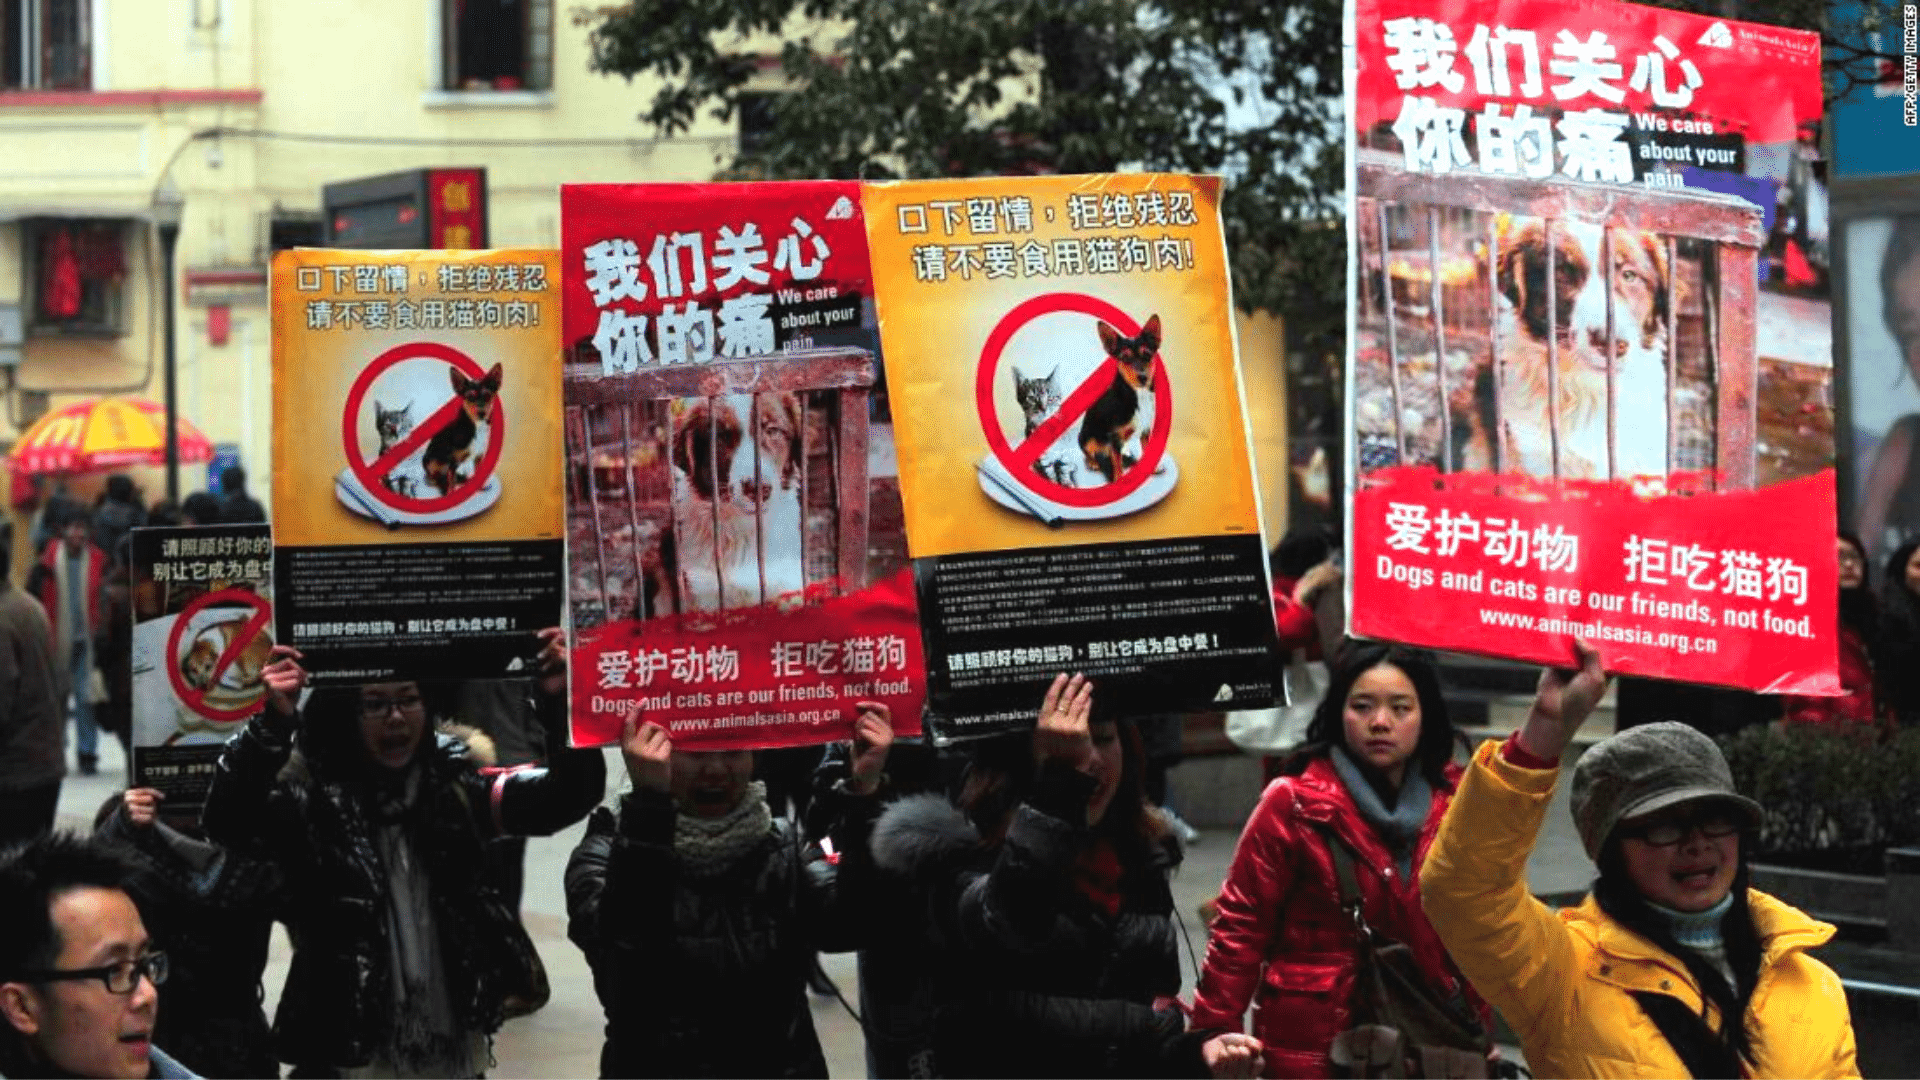 Victory: One City in China has Officially Banned the Consumption of Dogs, Cats, and Bats!